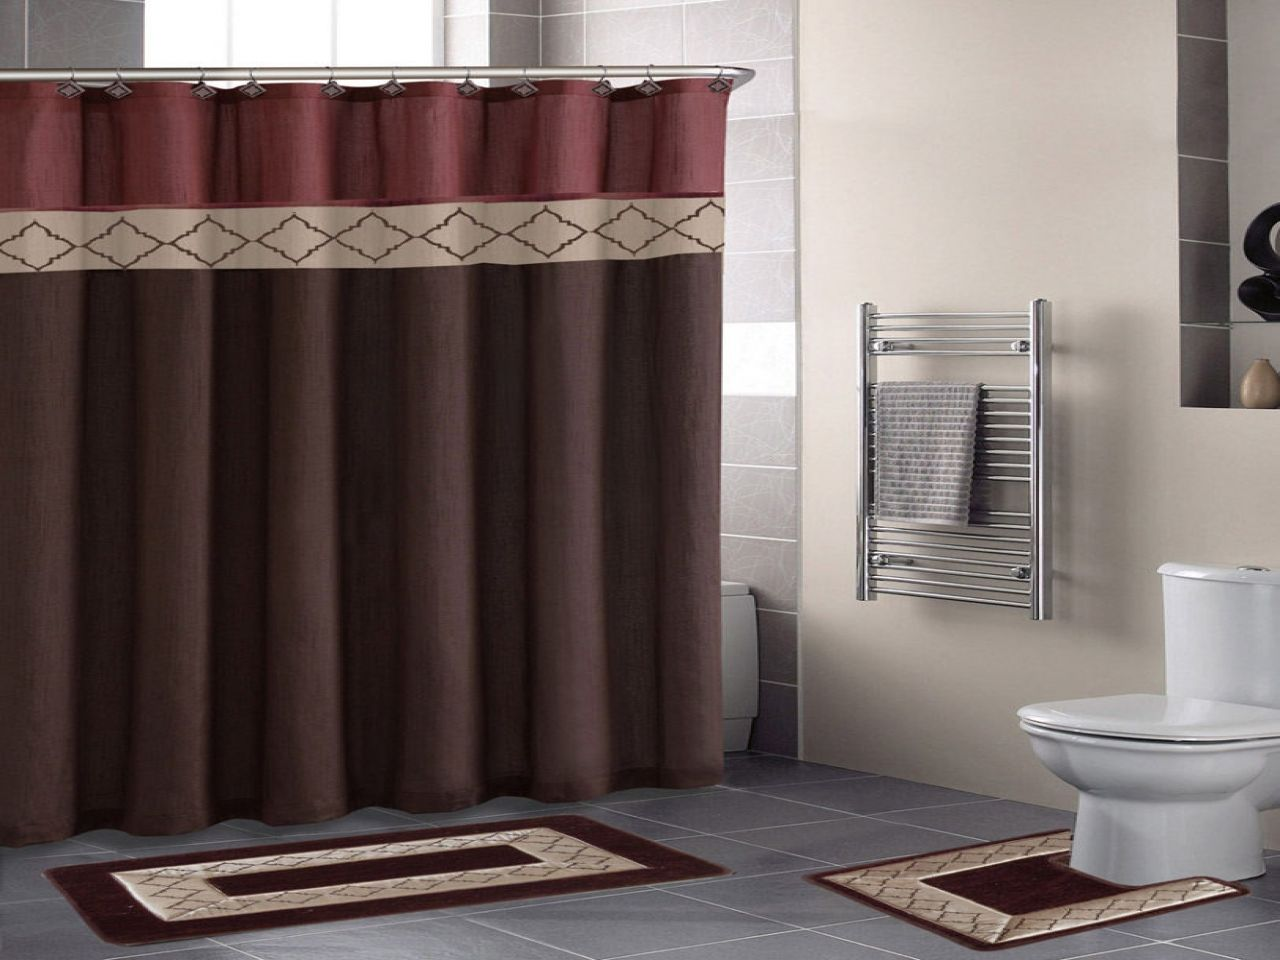 Bathroom rugs and shower curtains ideas pinterest bathroom trends